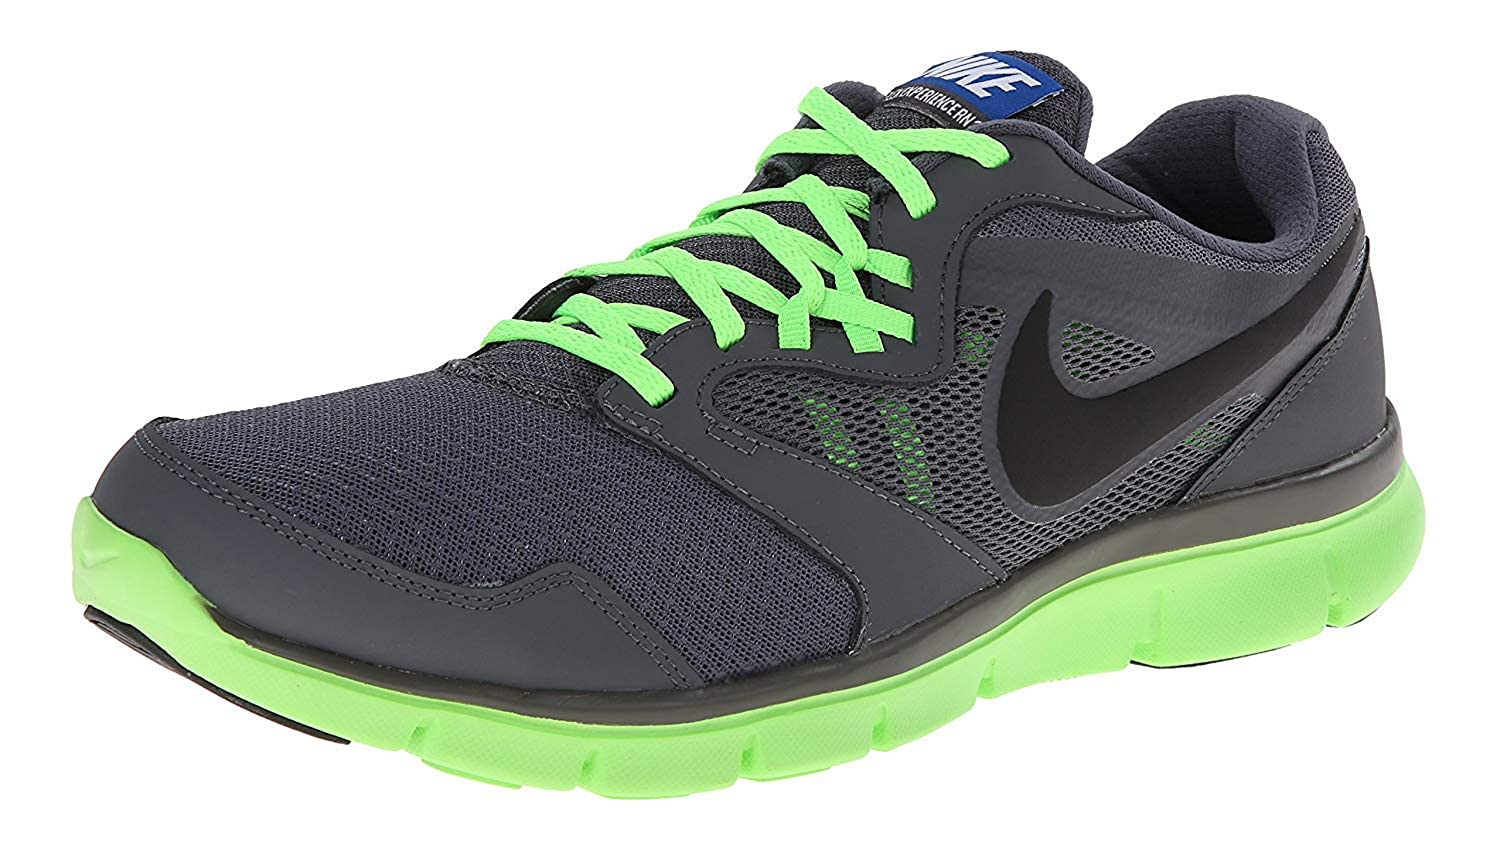 | Nike Flex Experience Rn 3 Men's Running Shoe